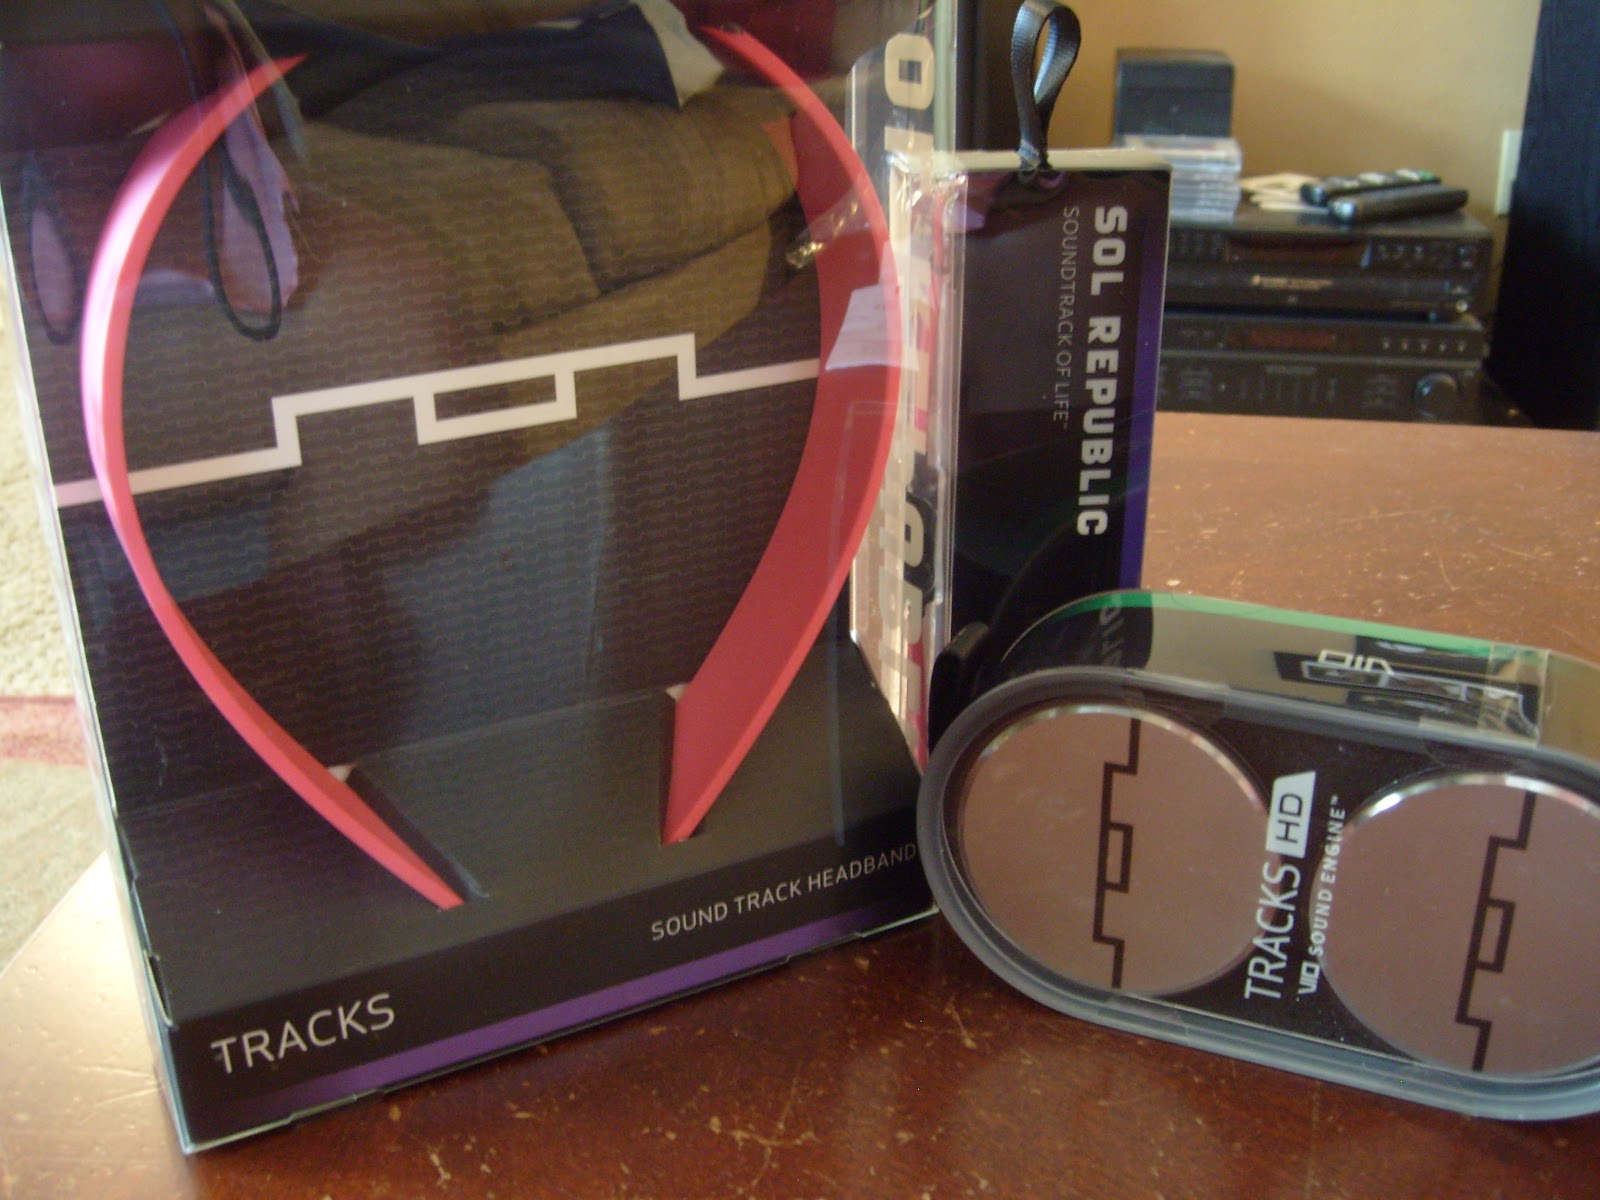 Sol Republic Headphones Review & Giveaway - CLOSED | STACIE RAYE